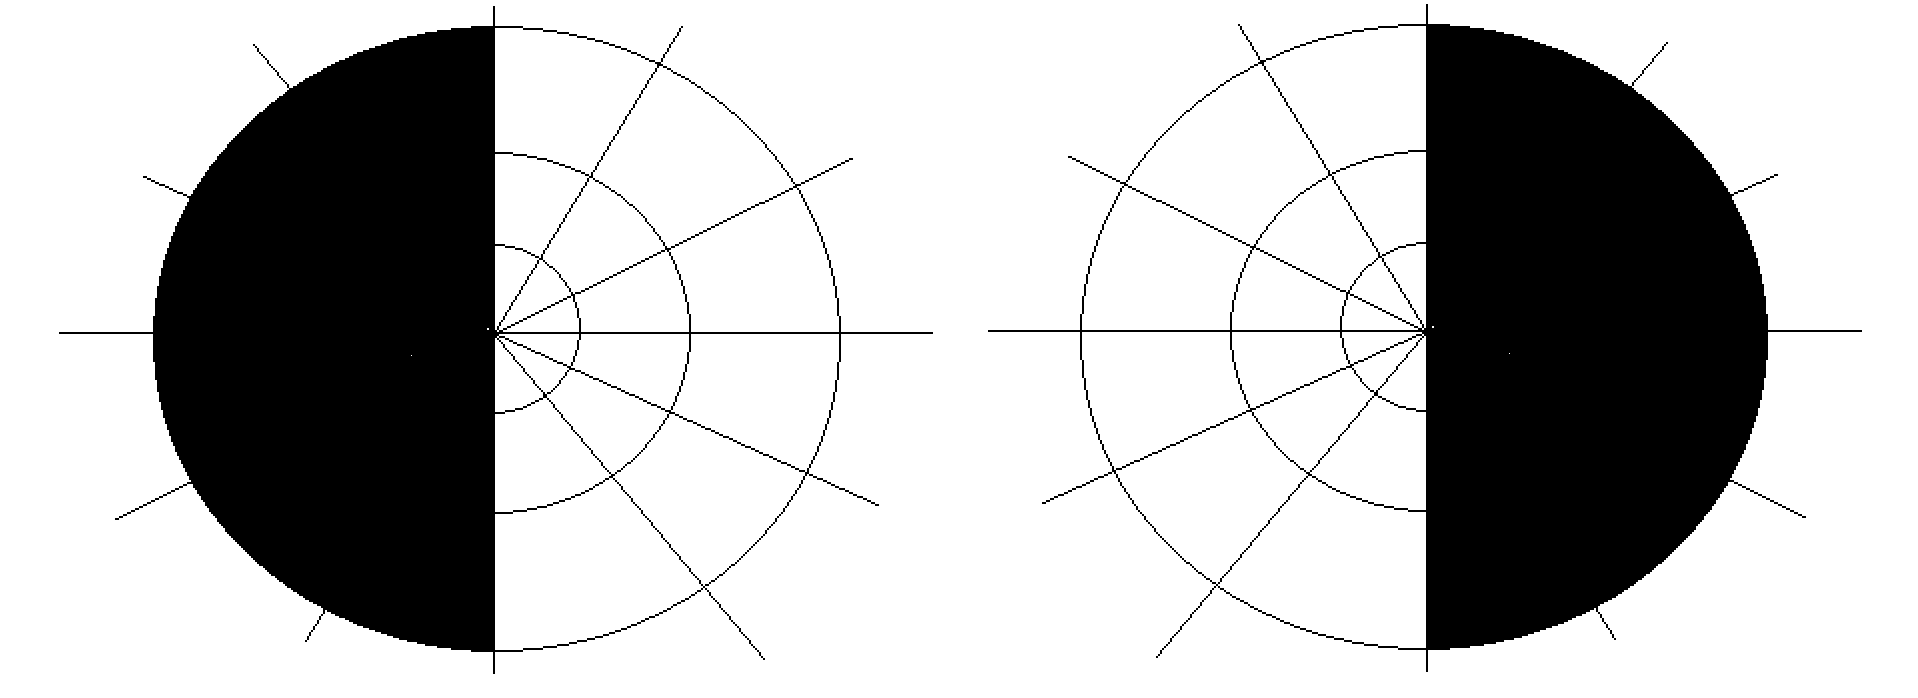 Loss of left visual field in the left eye, and right visual field in the right eye (black regions) mark the classic presentation of bitemporal hemianopsia (source)